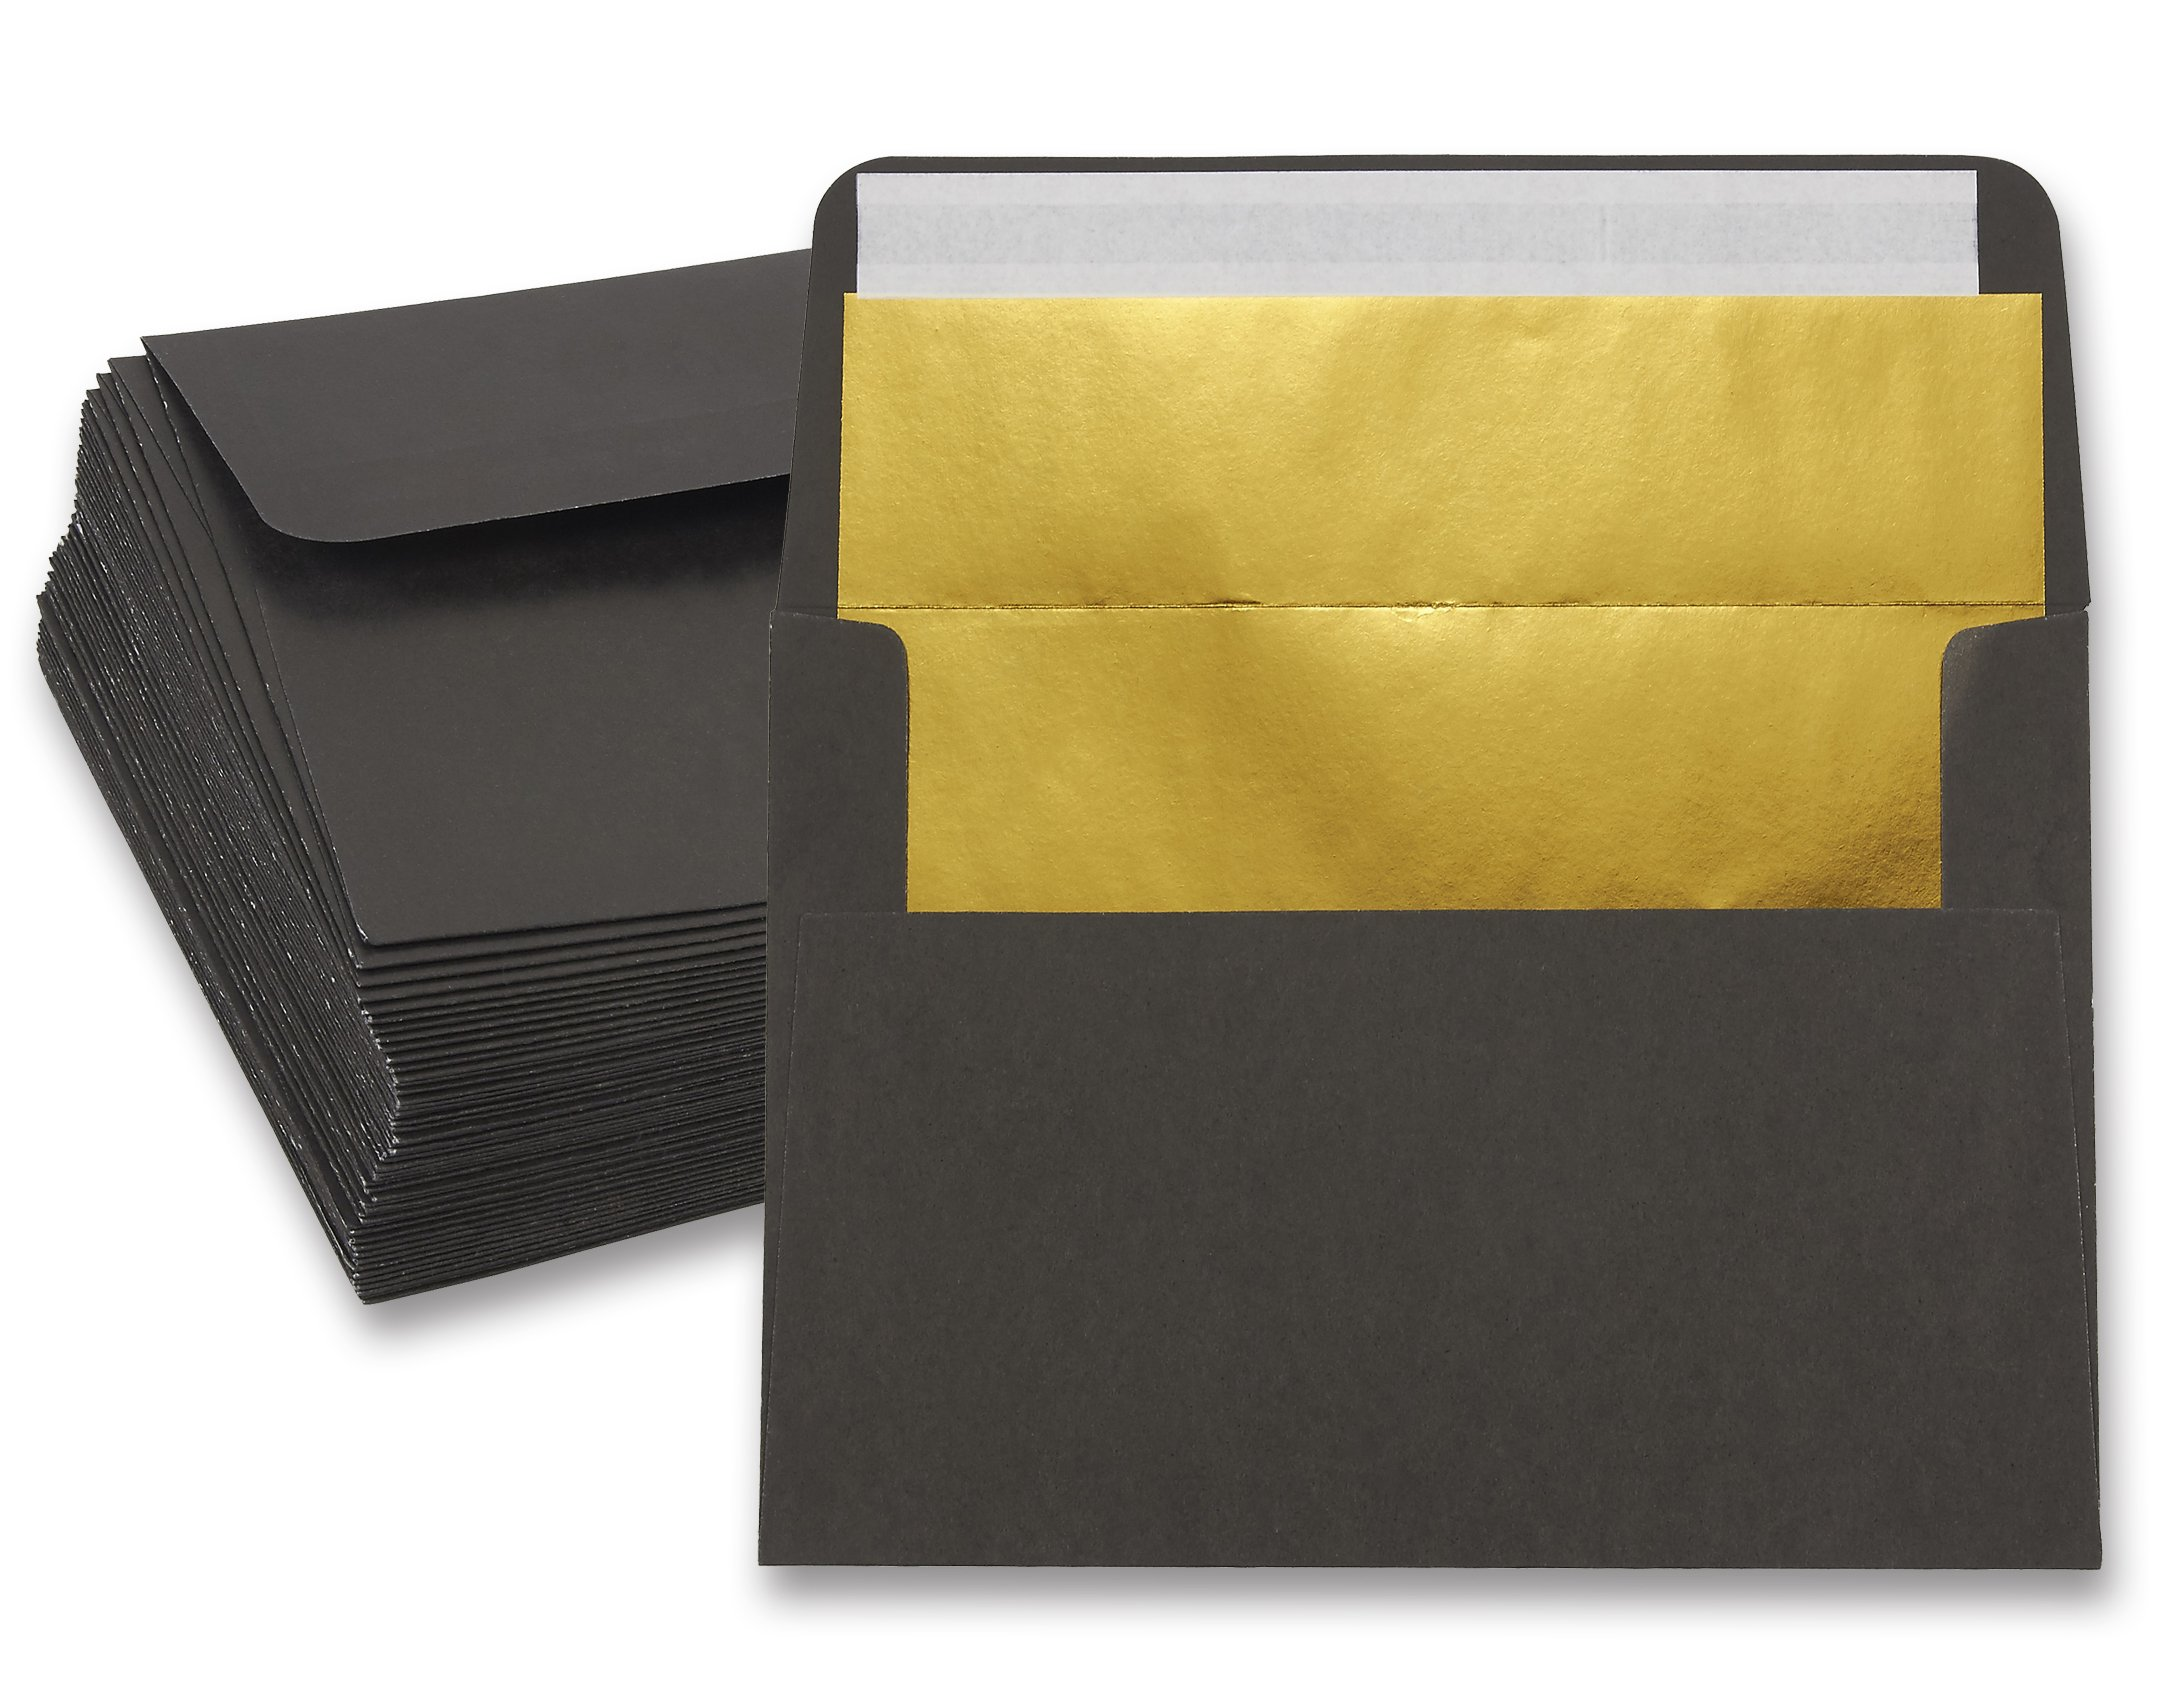 50 Pieces A7 Invitation Envelopes - Gold Foiled Lined Envelopes- Perfect for Weddings, Graduations, Birthday Invitations - 120gsm, Black Outside, Gold Inside, 120 GSM Envelopes, 5 x 7 Inches